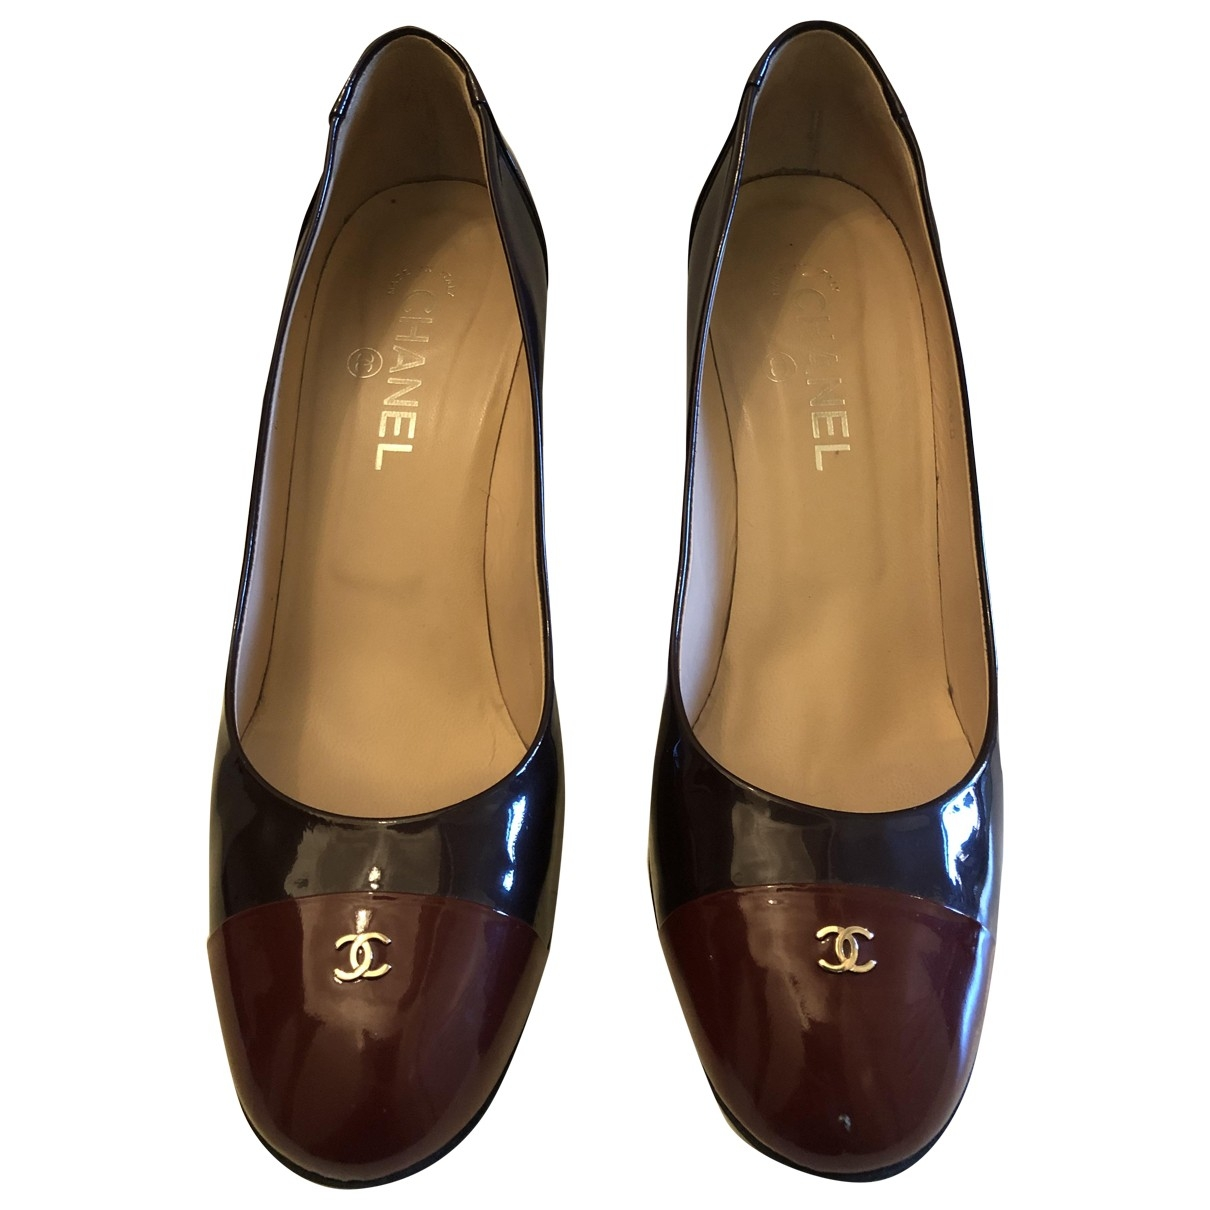 Chanel \N Burgundy Patent leather Heels for Women 40.5 EU